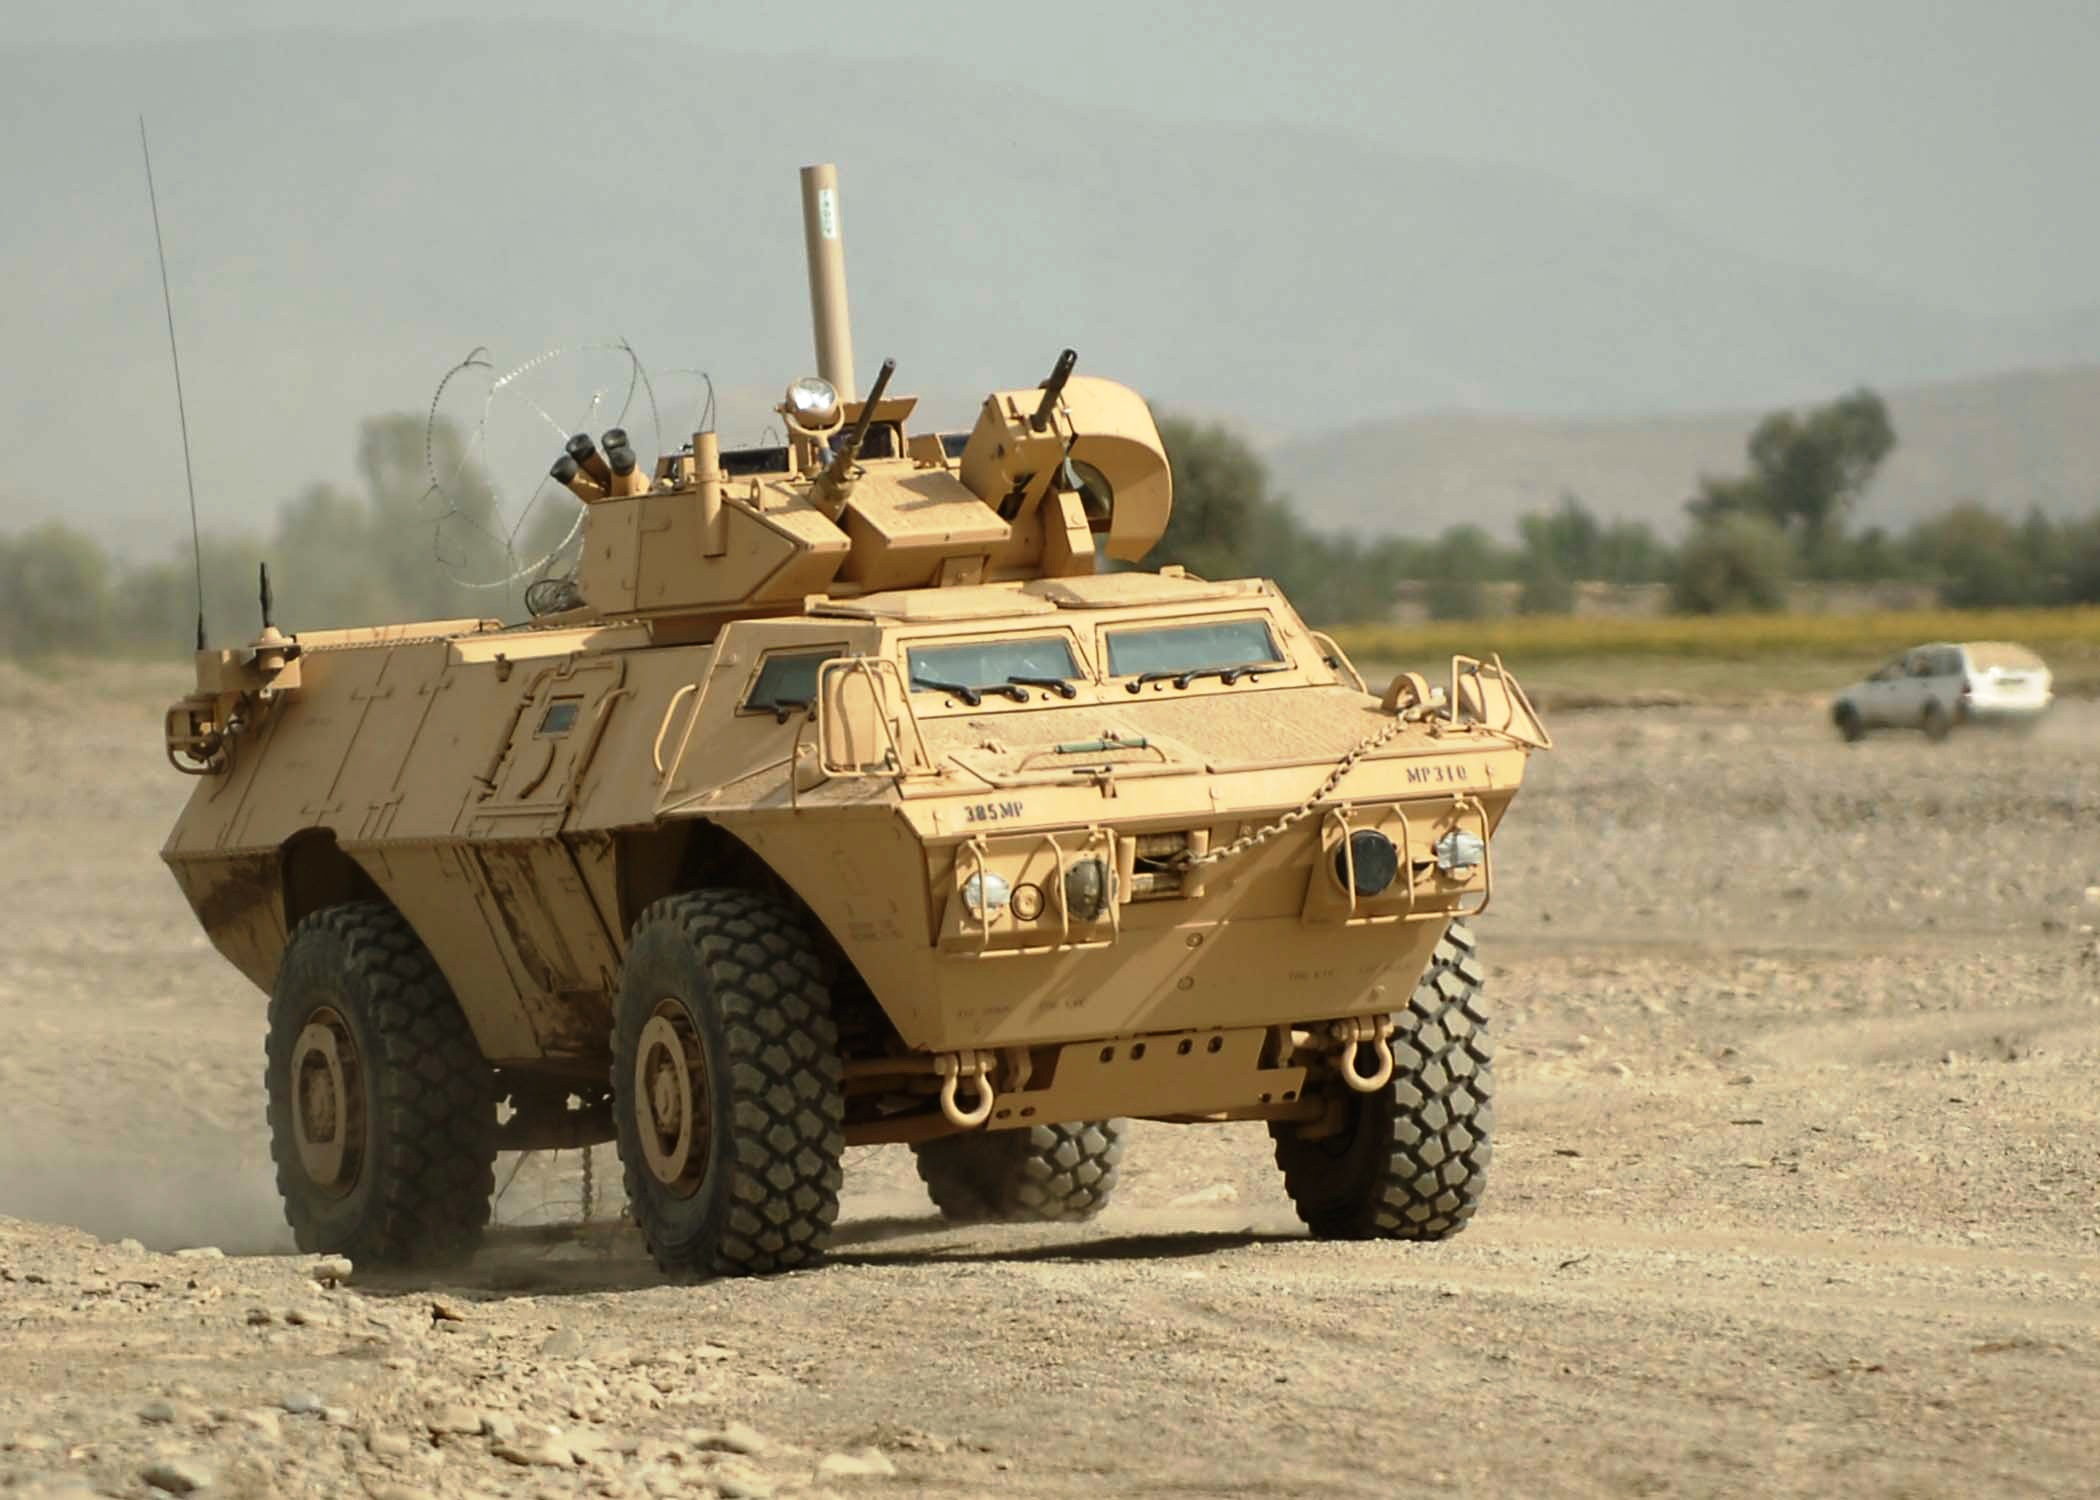 File:M1117 Armored Security Vehicle.jpg  Wikipedia, the free